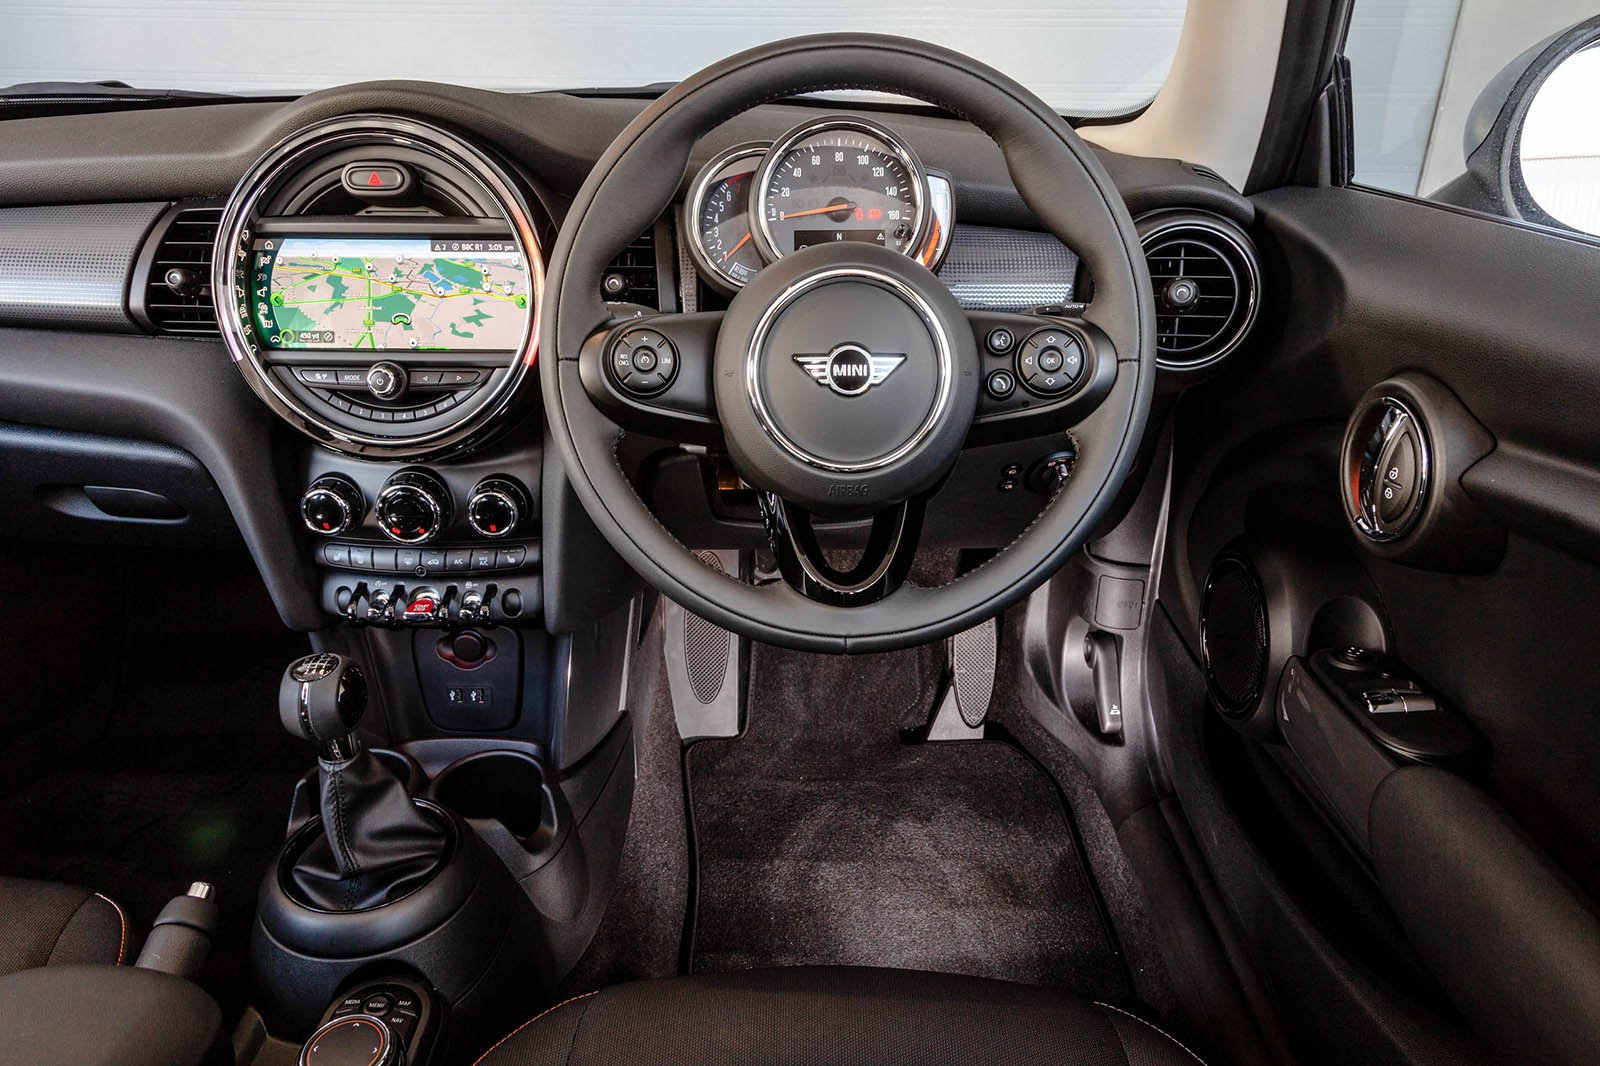 Mini hatchback 3dr - interior